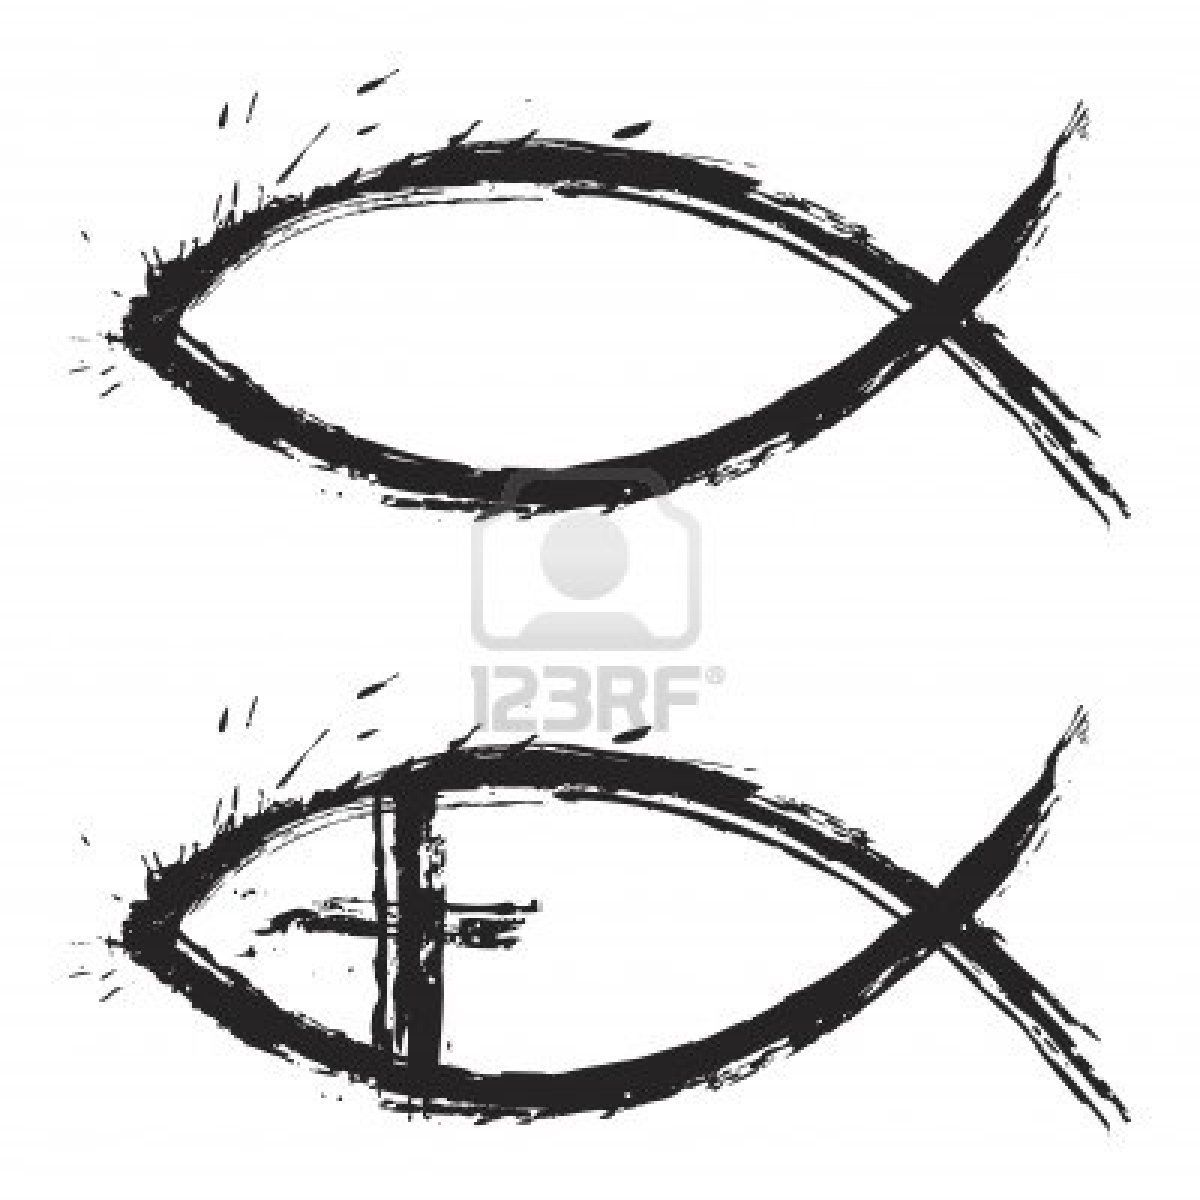 Christian Religion Symbol Fish Created In Grunge Style Tattoos